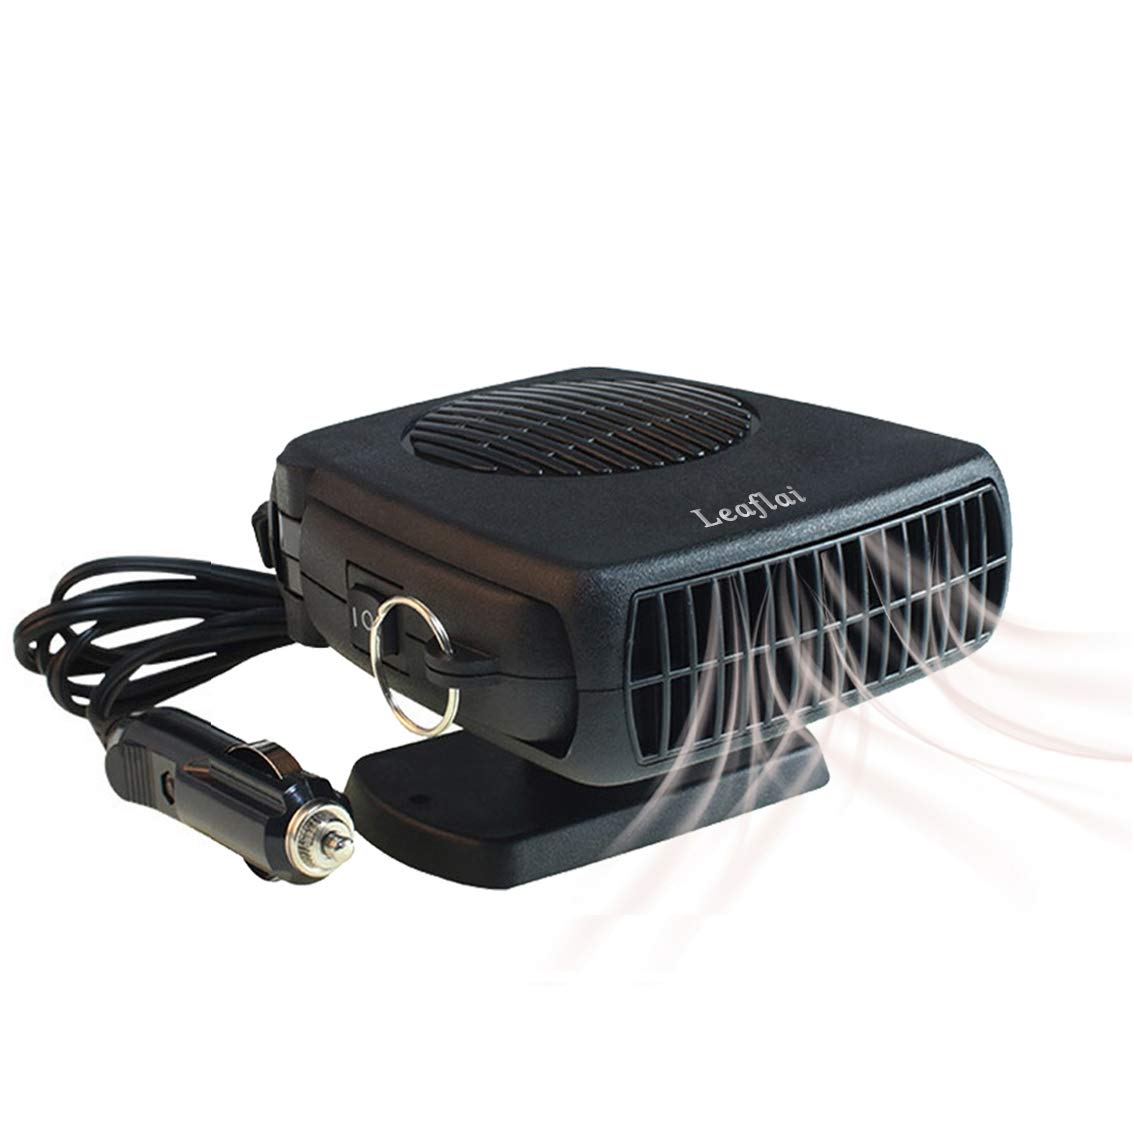 [2019 New] Car Heater,12V/200W Portable Defogger,2-in-1 Windshield Demister,Vehicle windscreen Defroster,Fast Cooling Auto Mini Fan Heater,Plugs into Cigarette Lighter,Suitable for All Cars